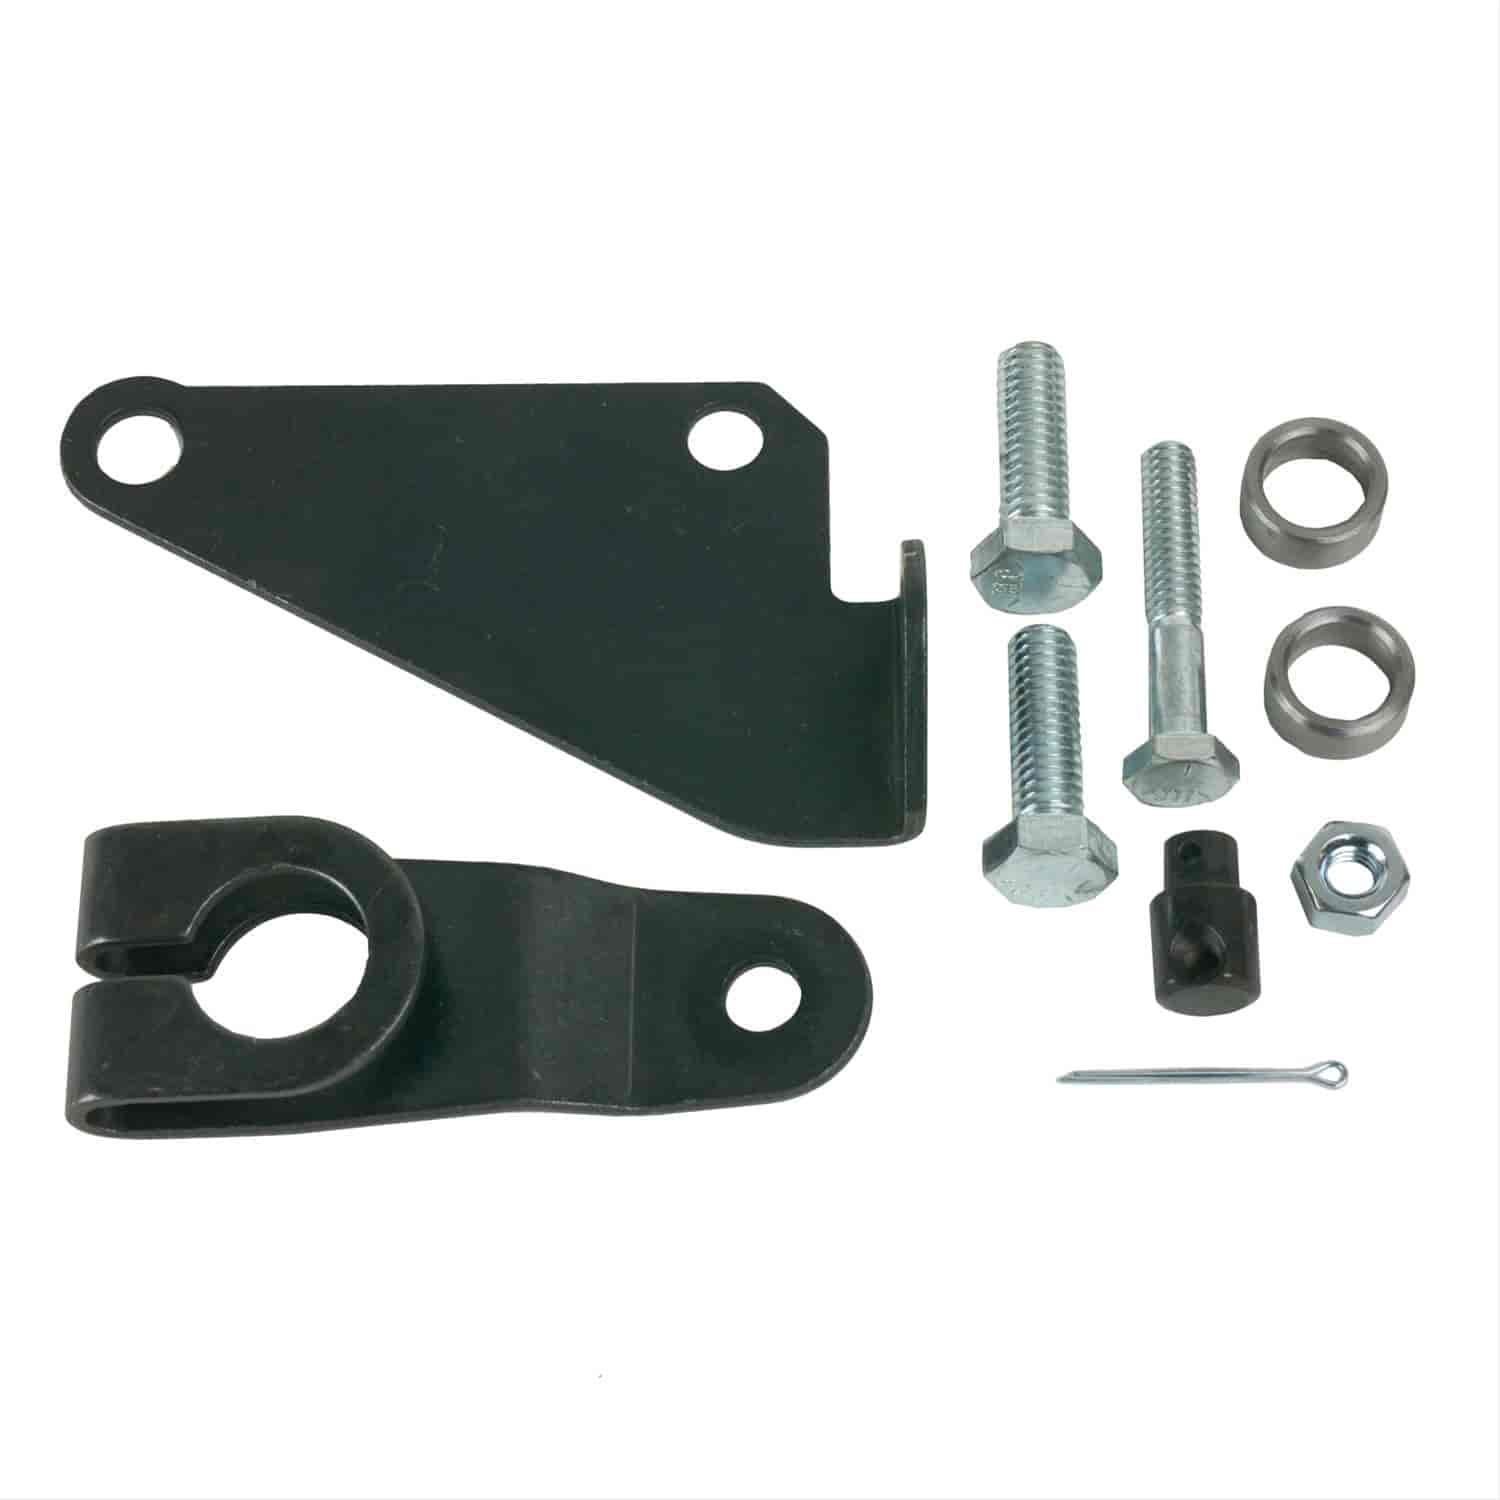 B&M 40497 - B&M Automatic Shifter and Transmission Brackets and Levers